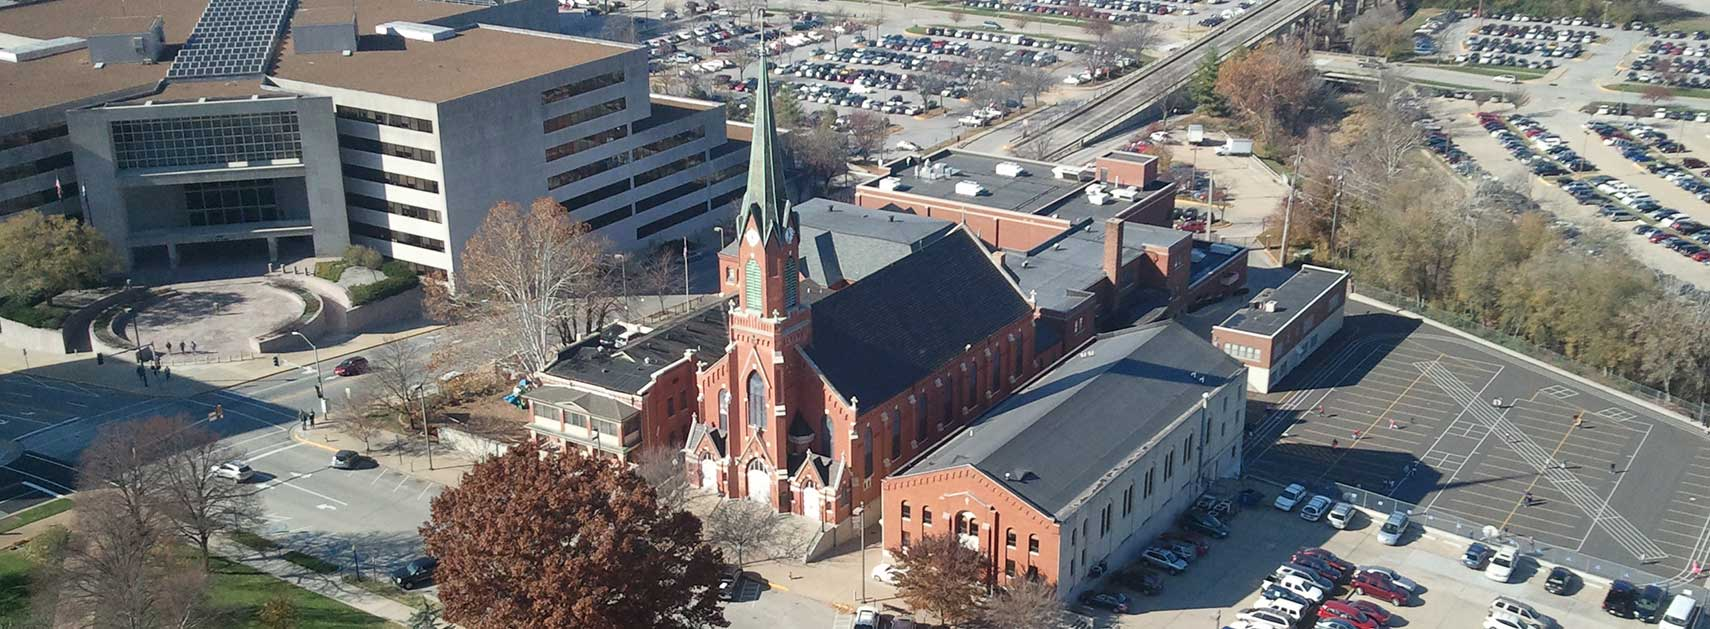 Saint Peter's Church in Jefferson City, Missouri